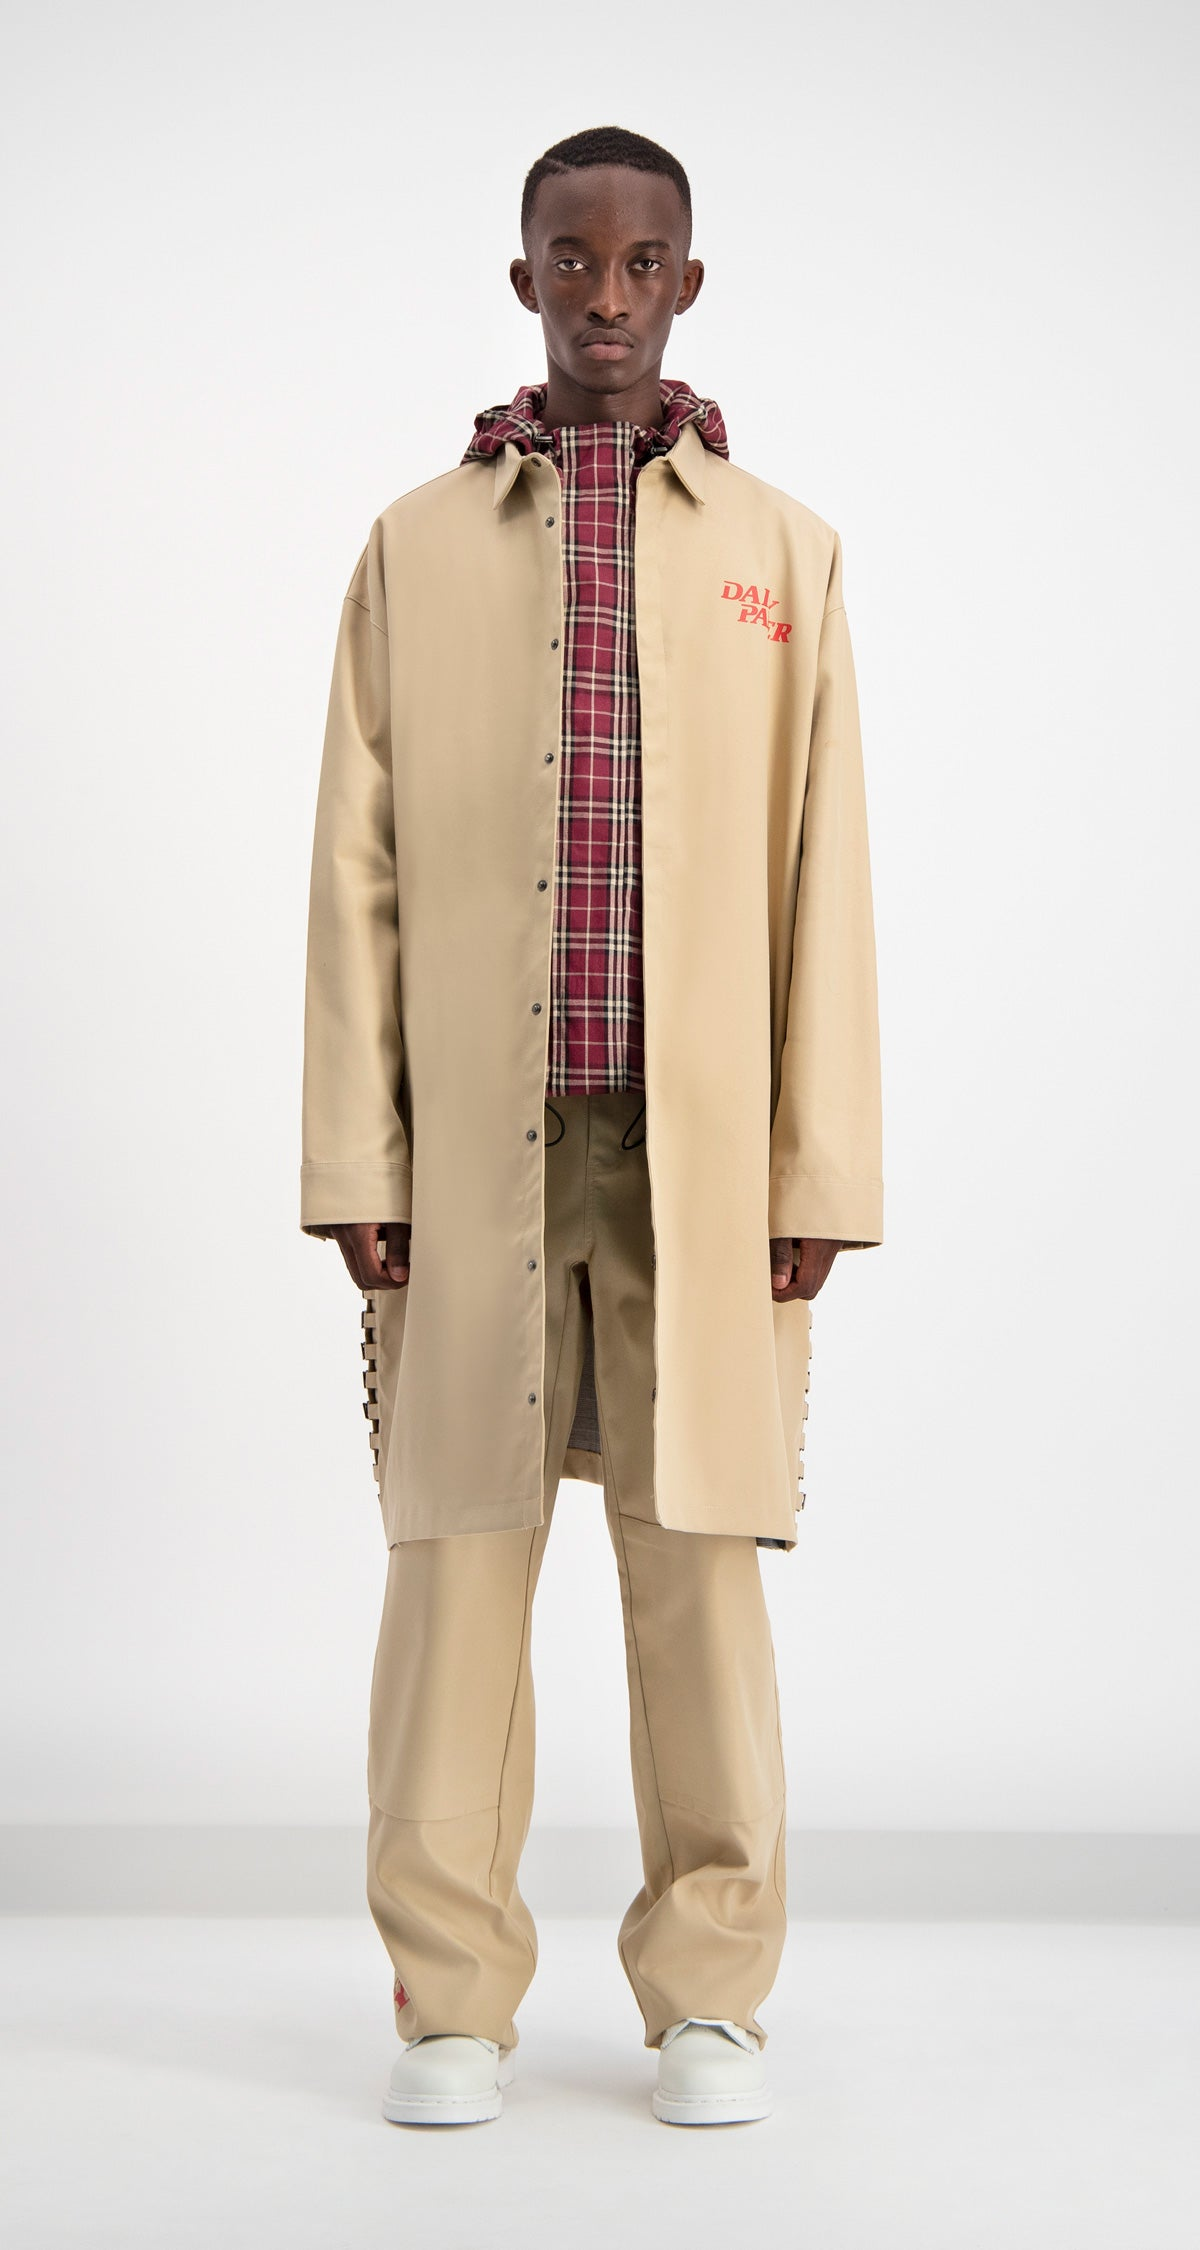 Daily Paper - Beige Drawl Jacket Men Front